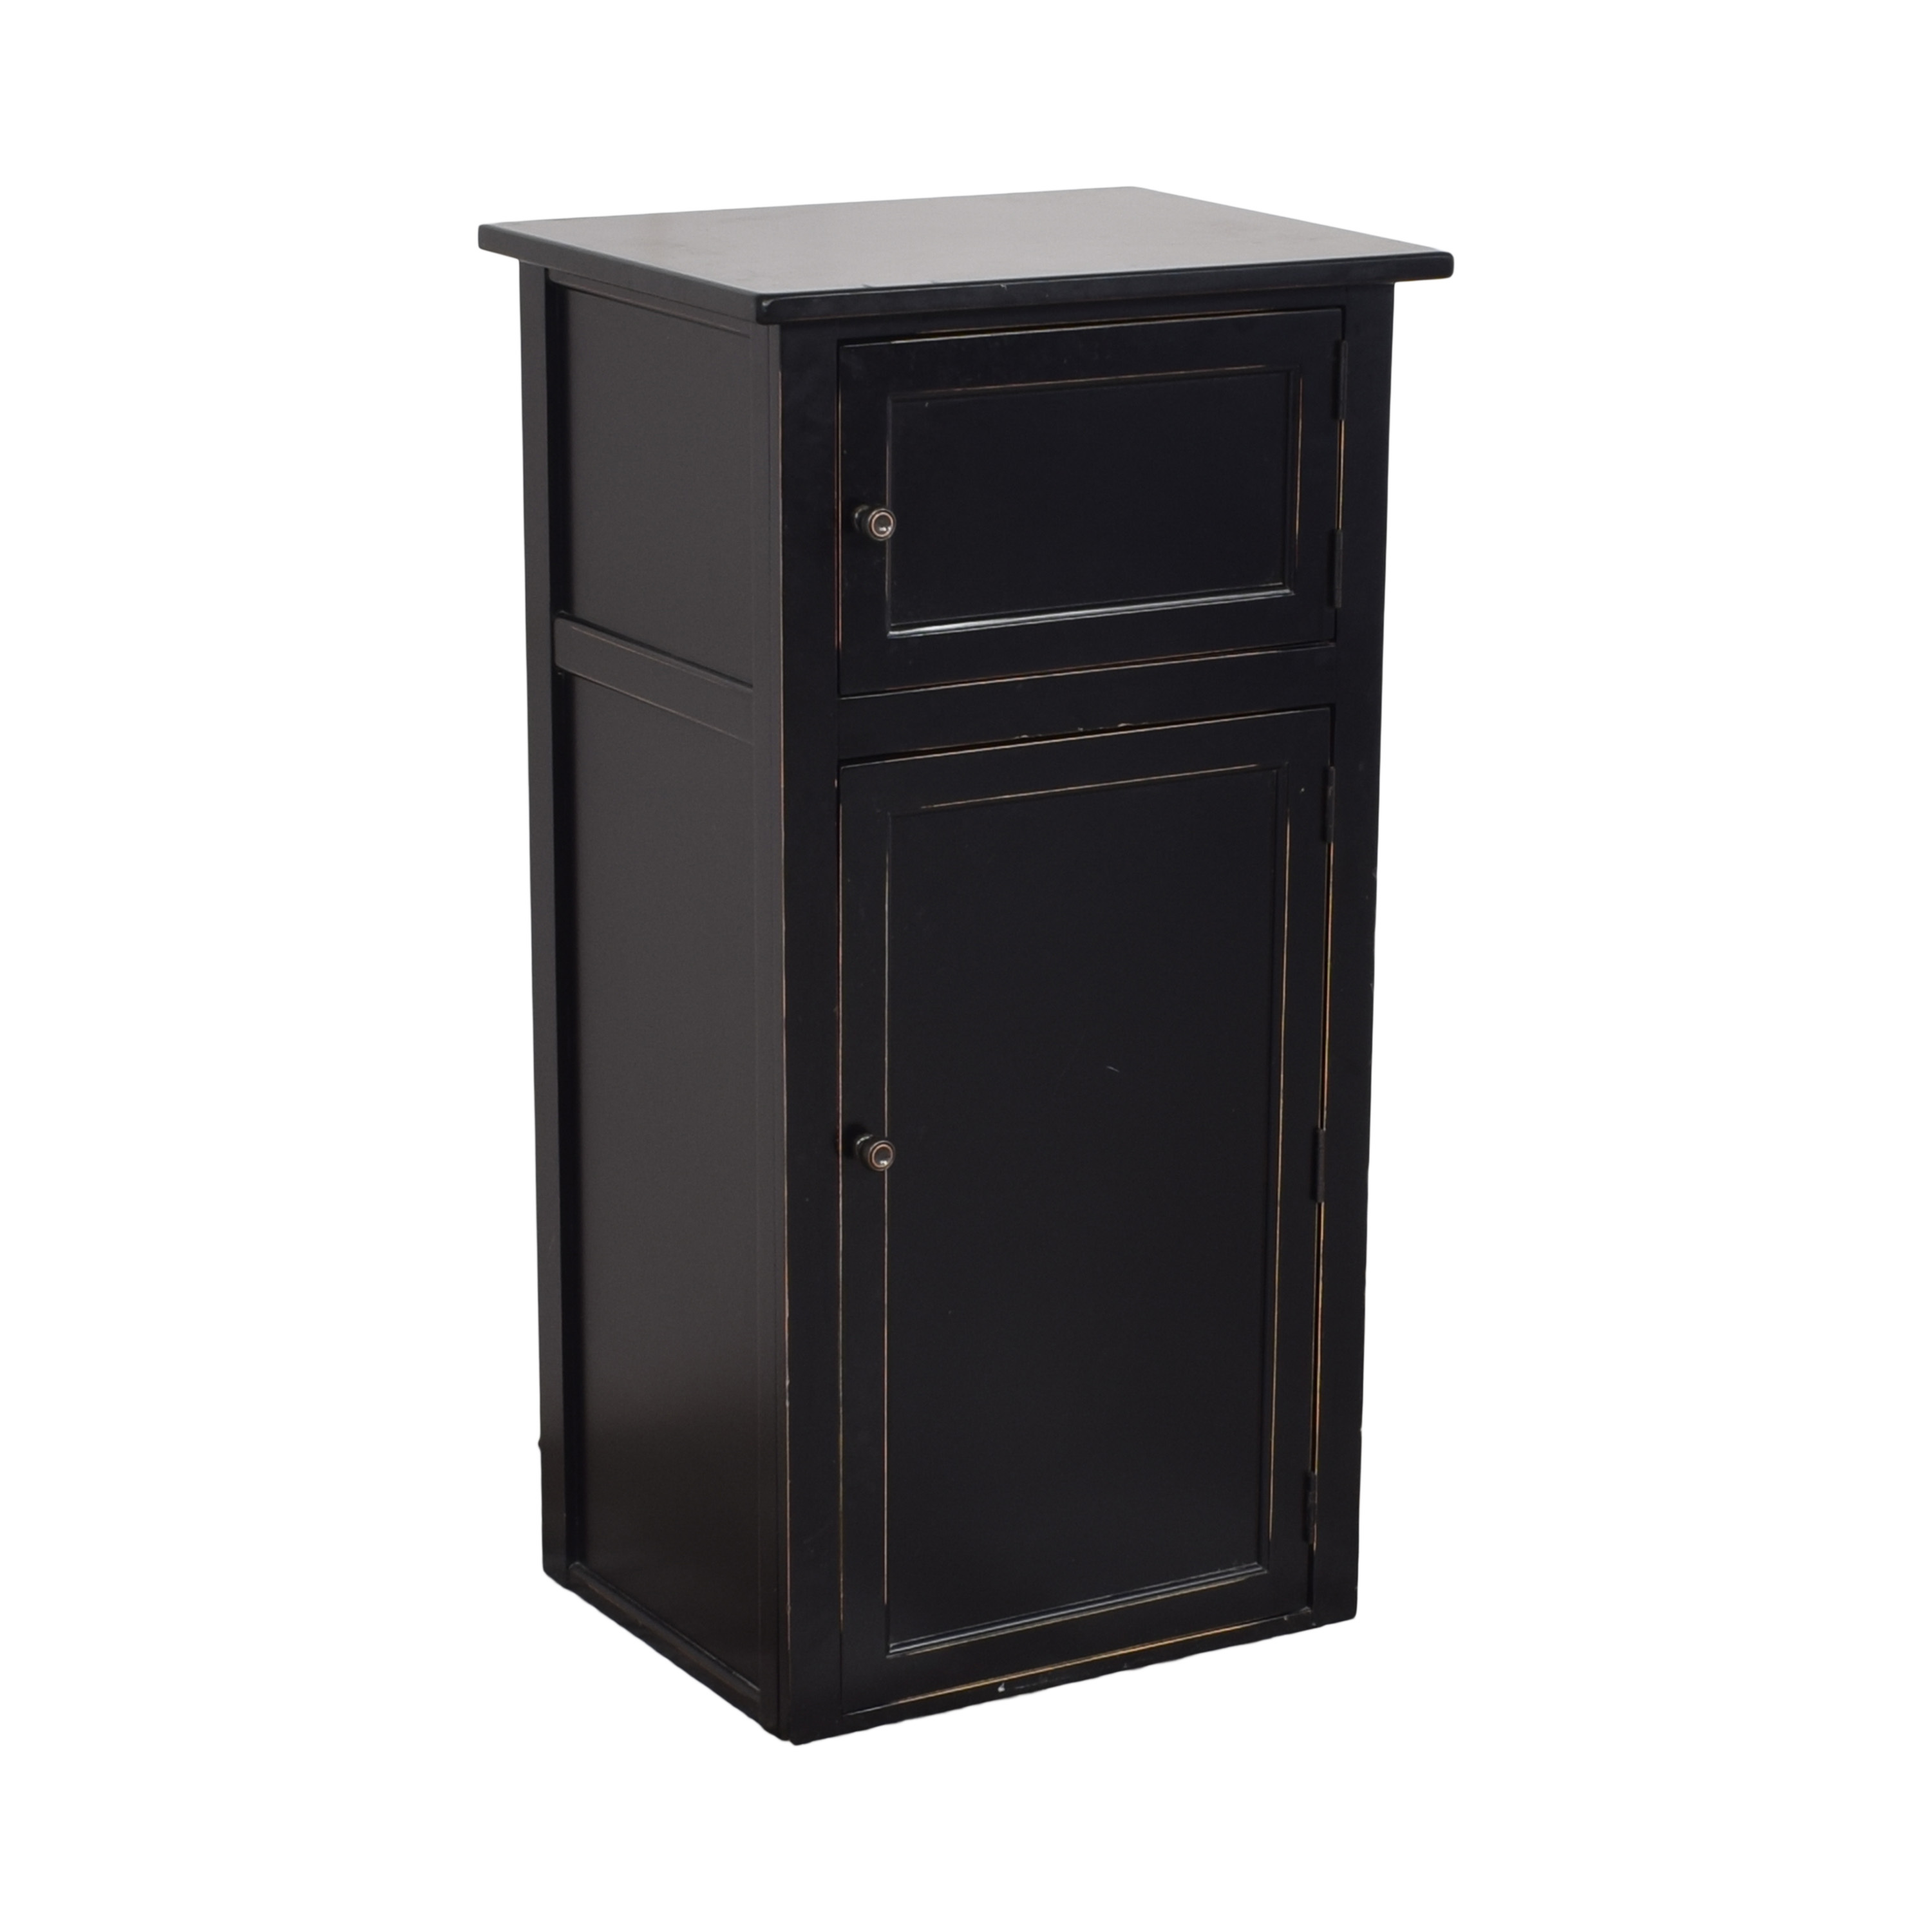 Crate & Barrel Crate & Barrel Two Door Cabinet for sale